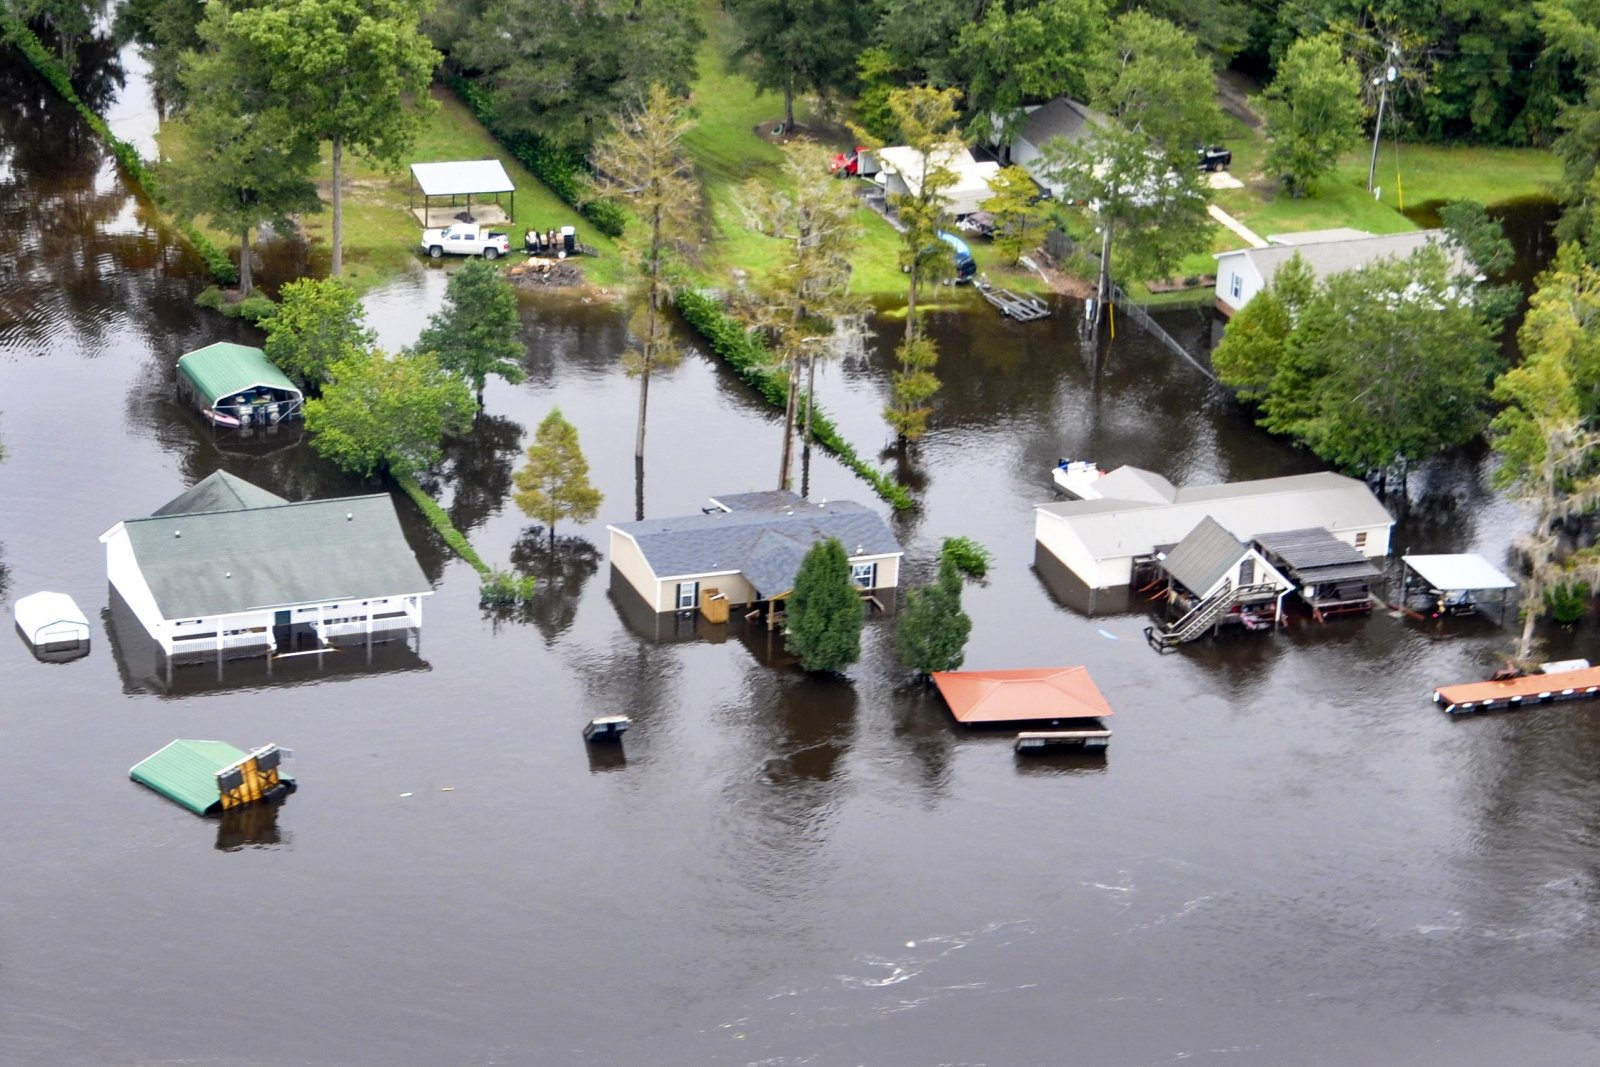 South Carolina experienced historic flooding in October 2015